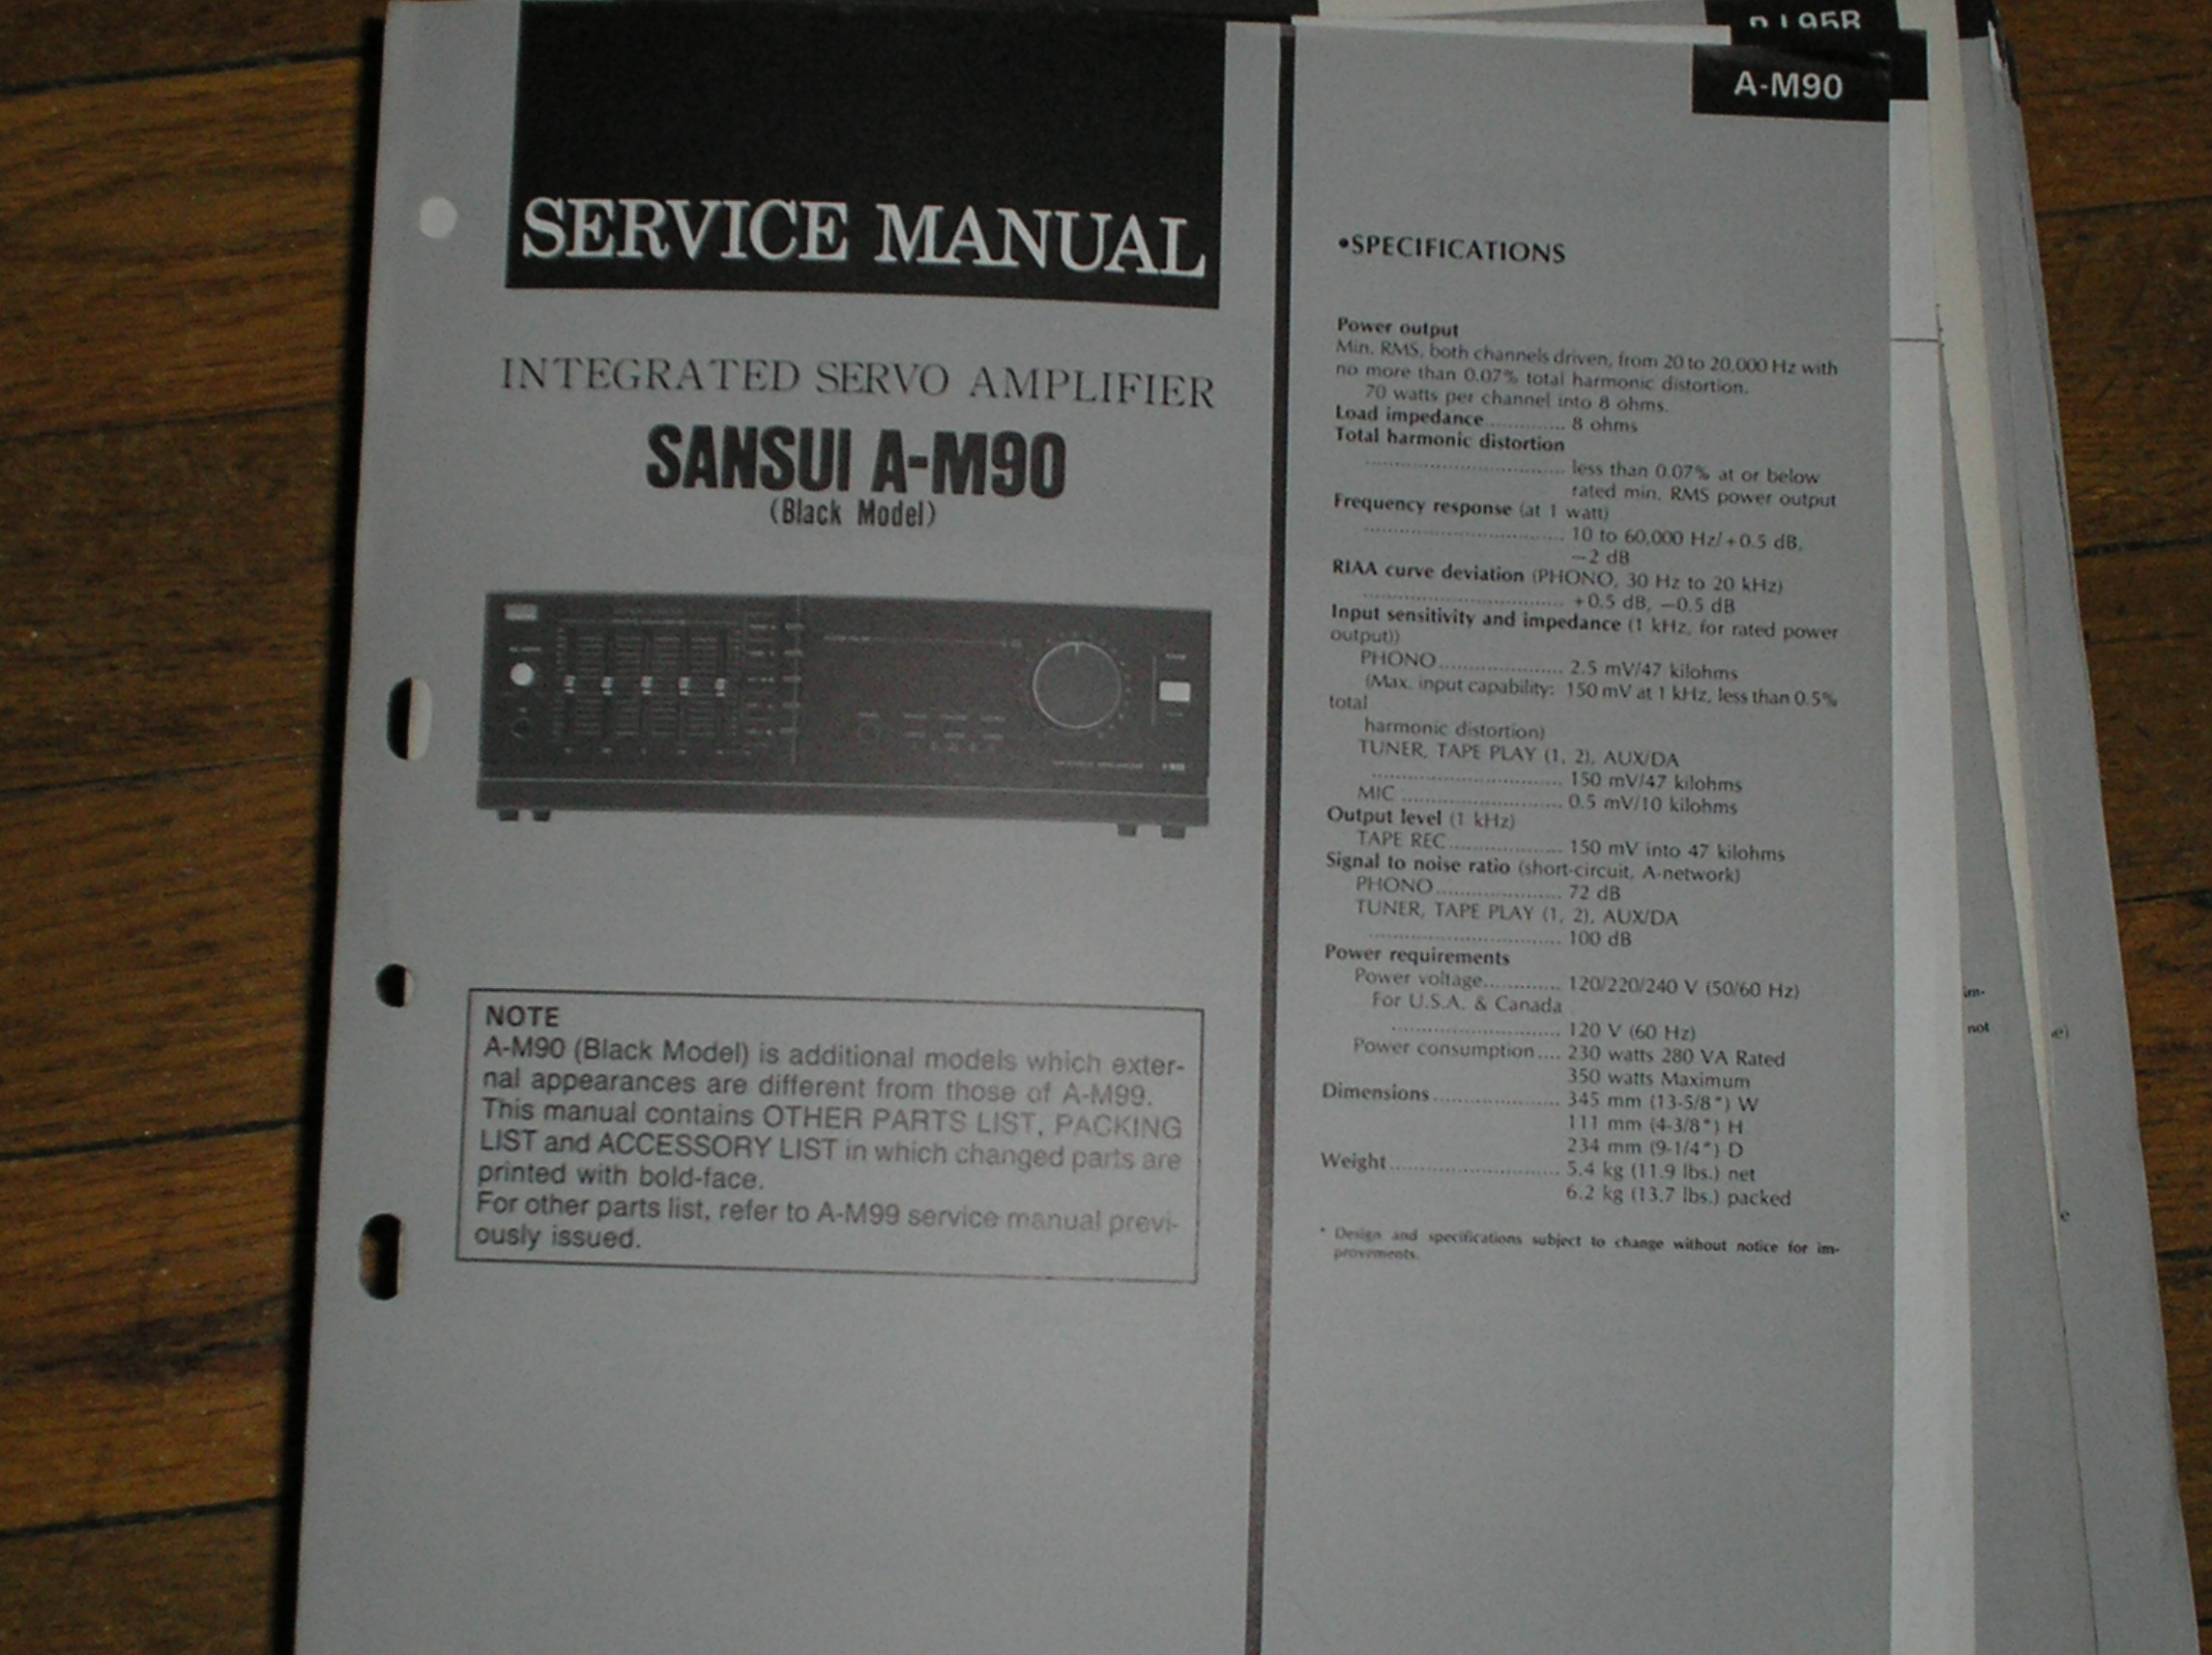 A-M90 Amplifier Service Manual